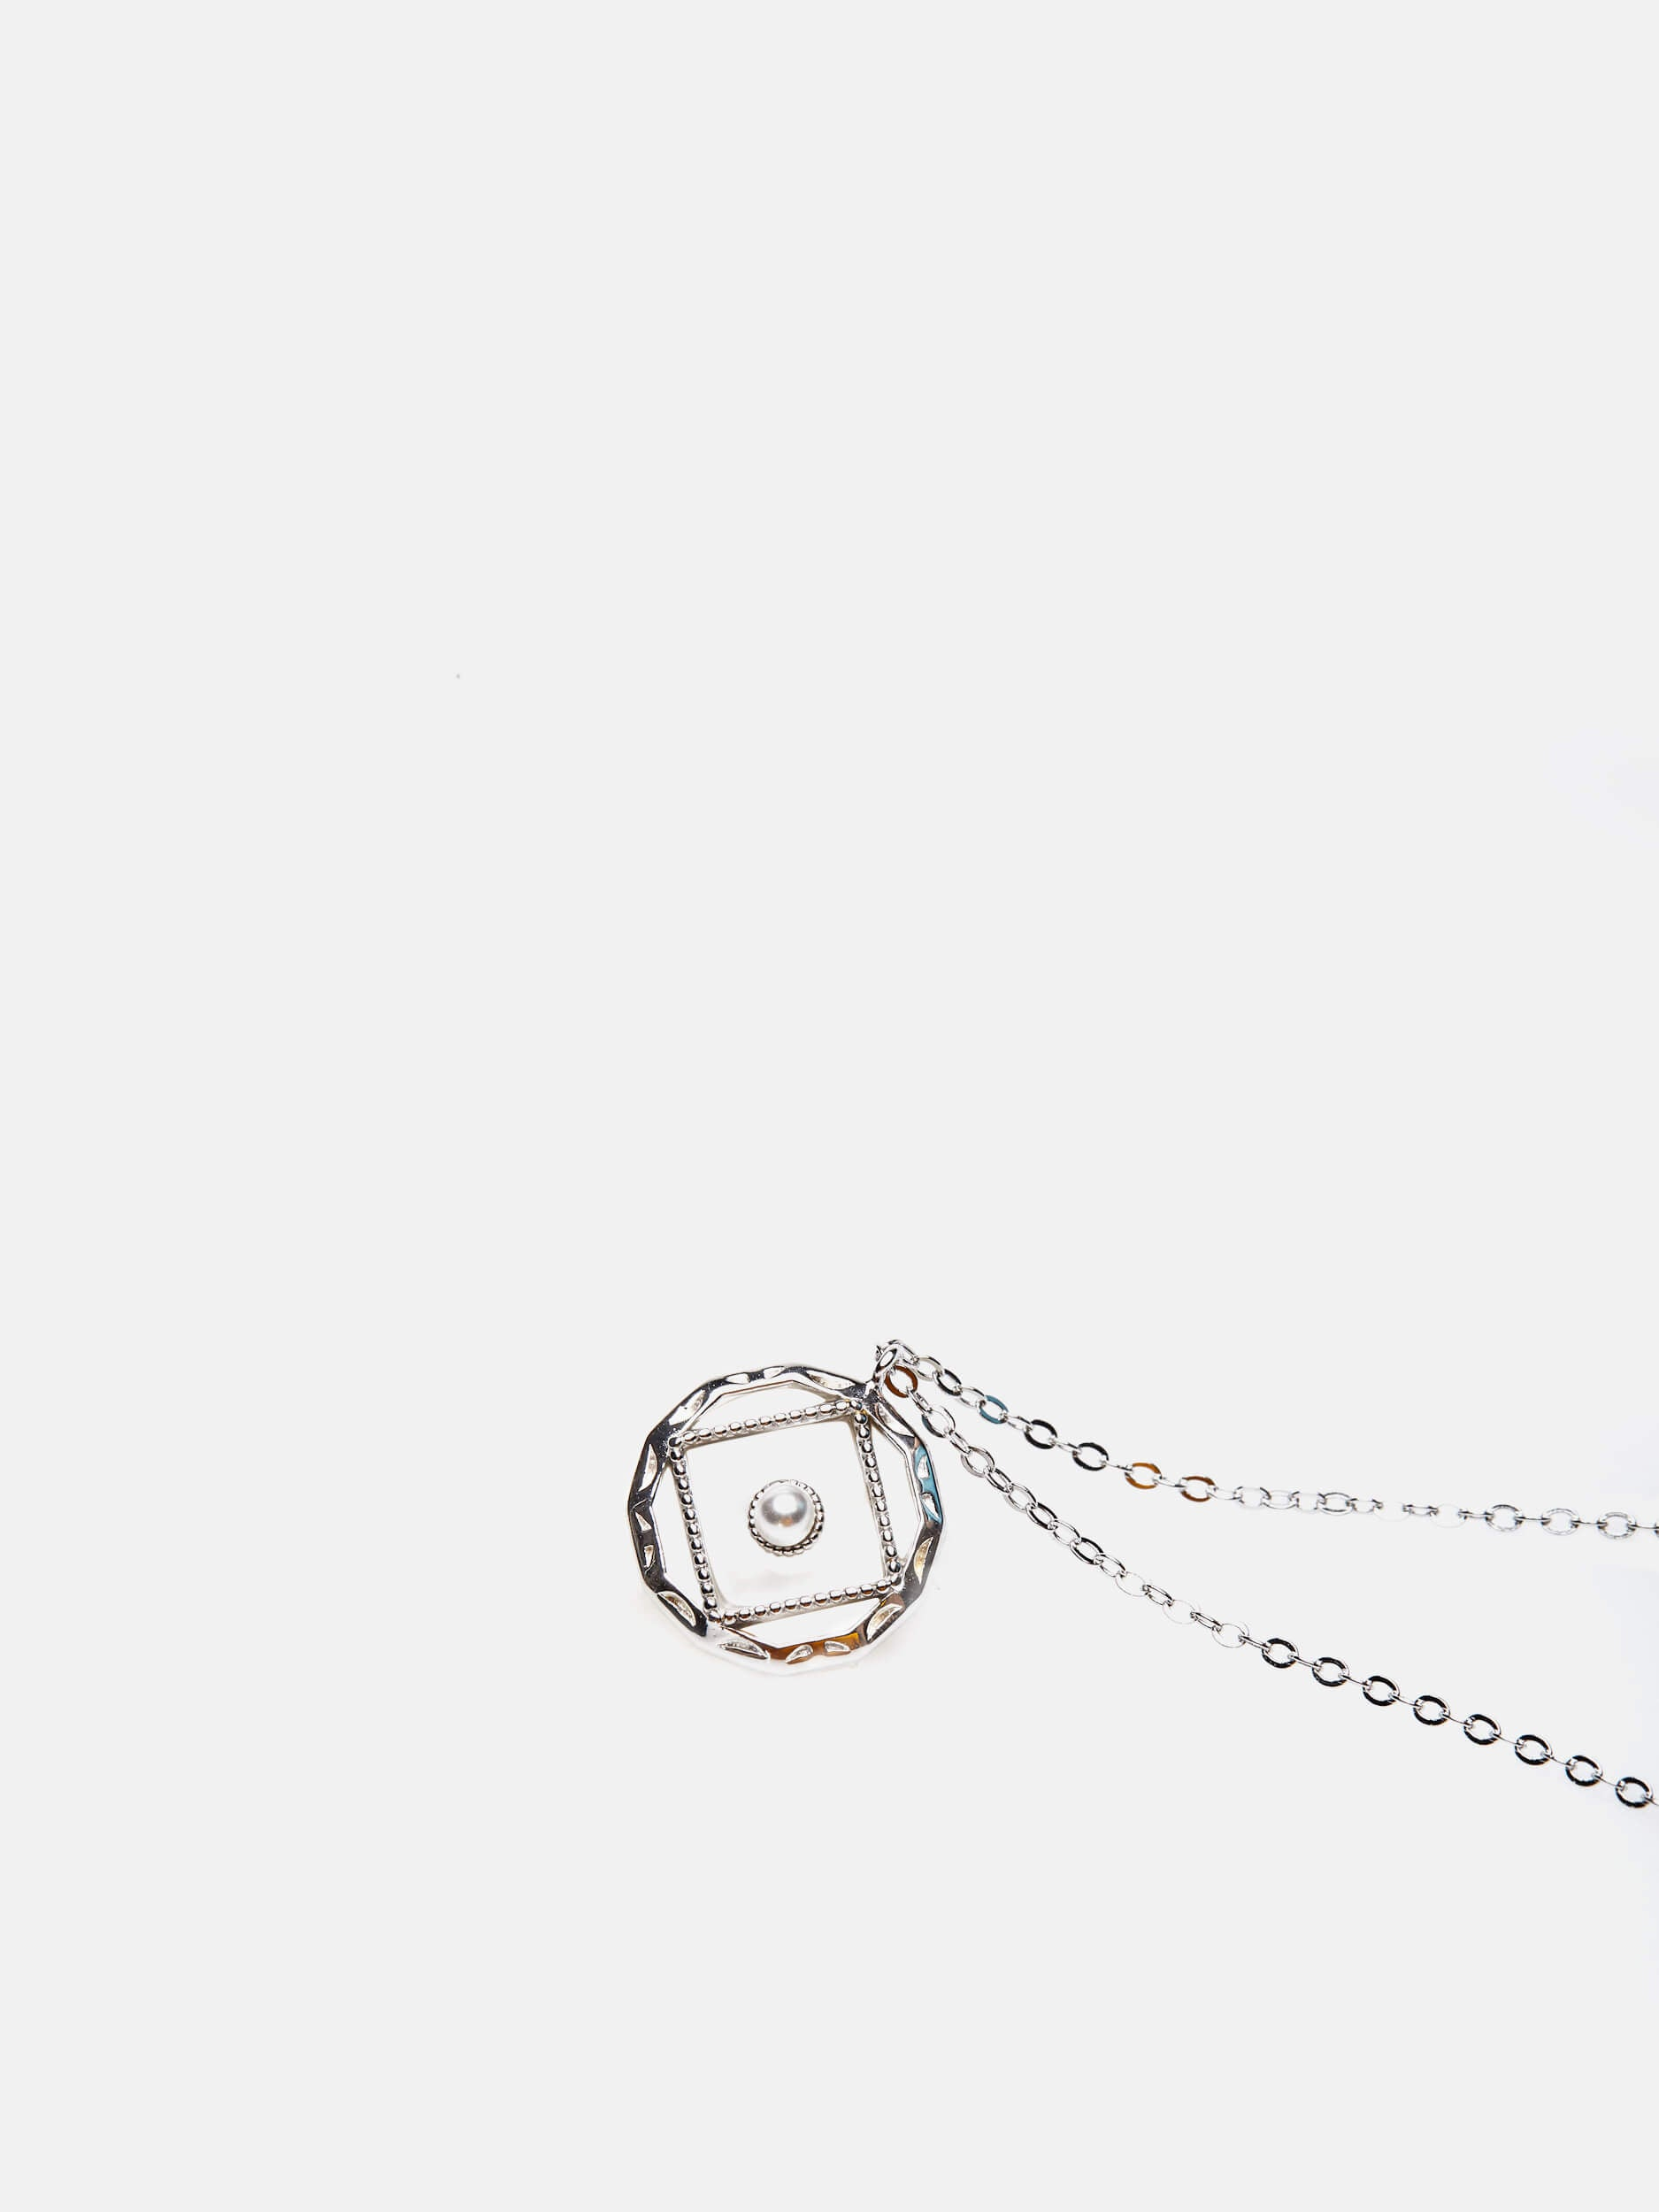 SUSEN Necklaces | SUSEN-www.susen.com